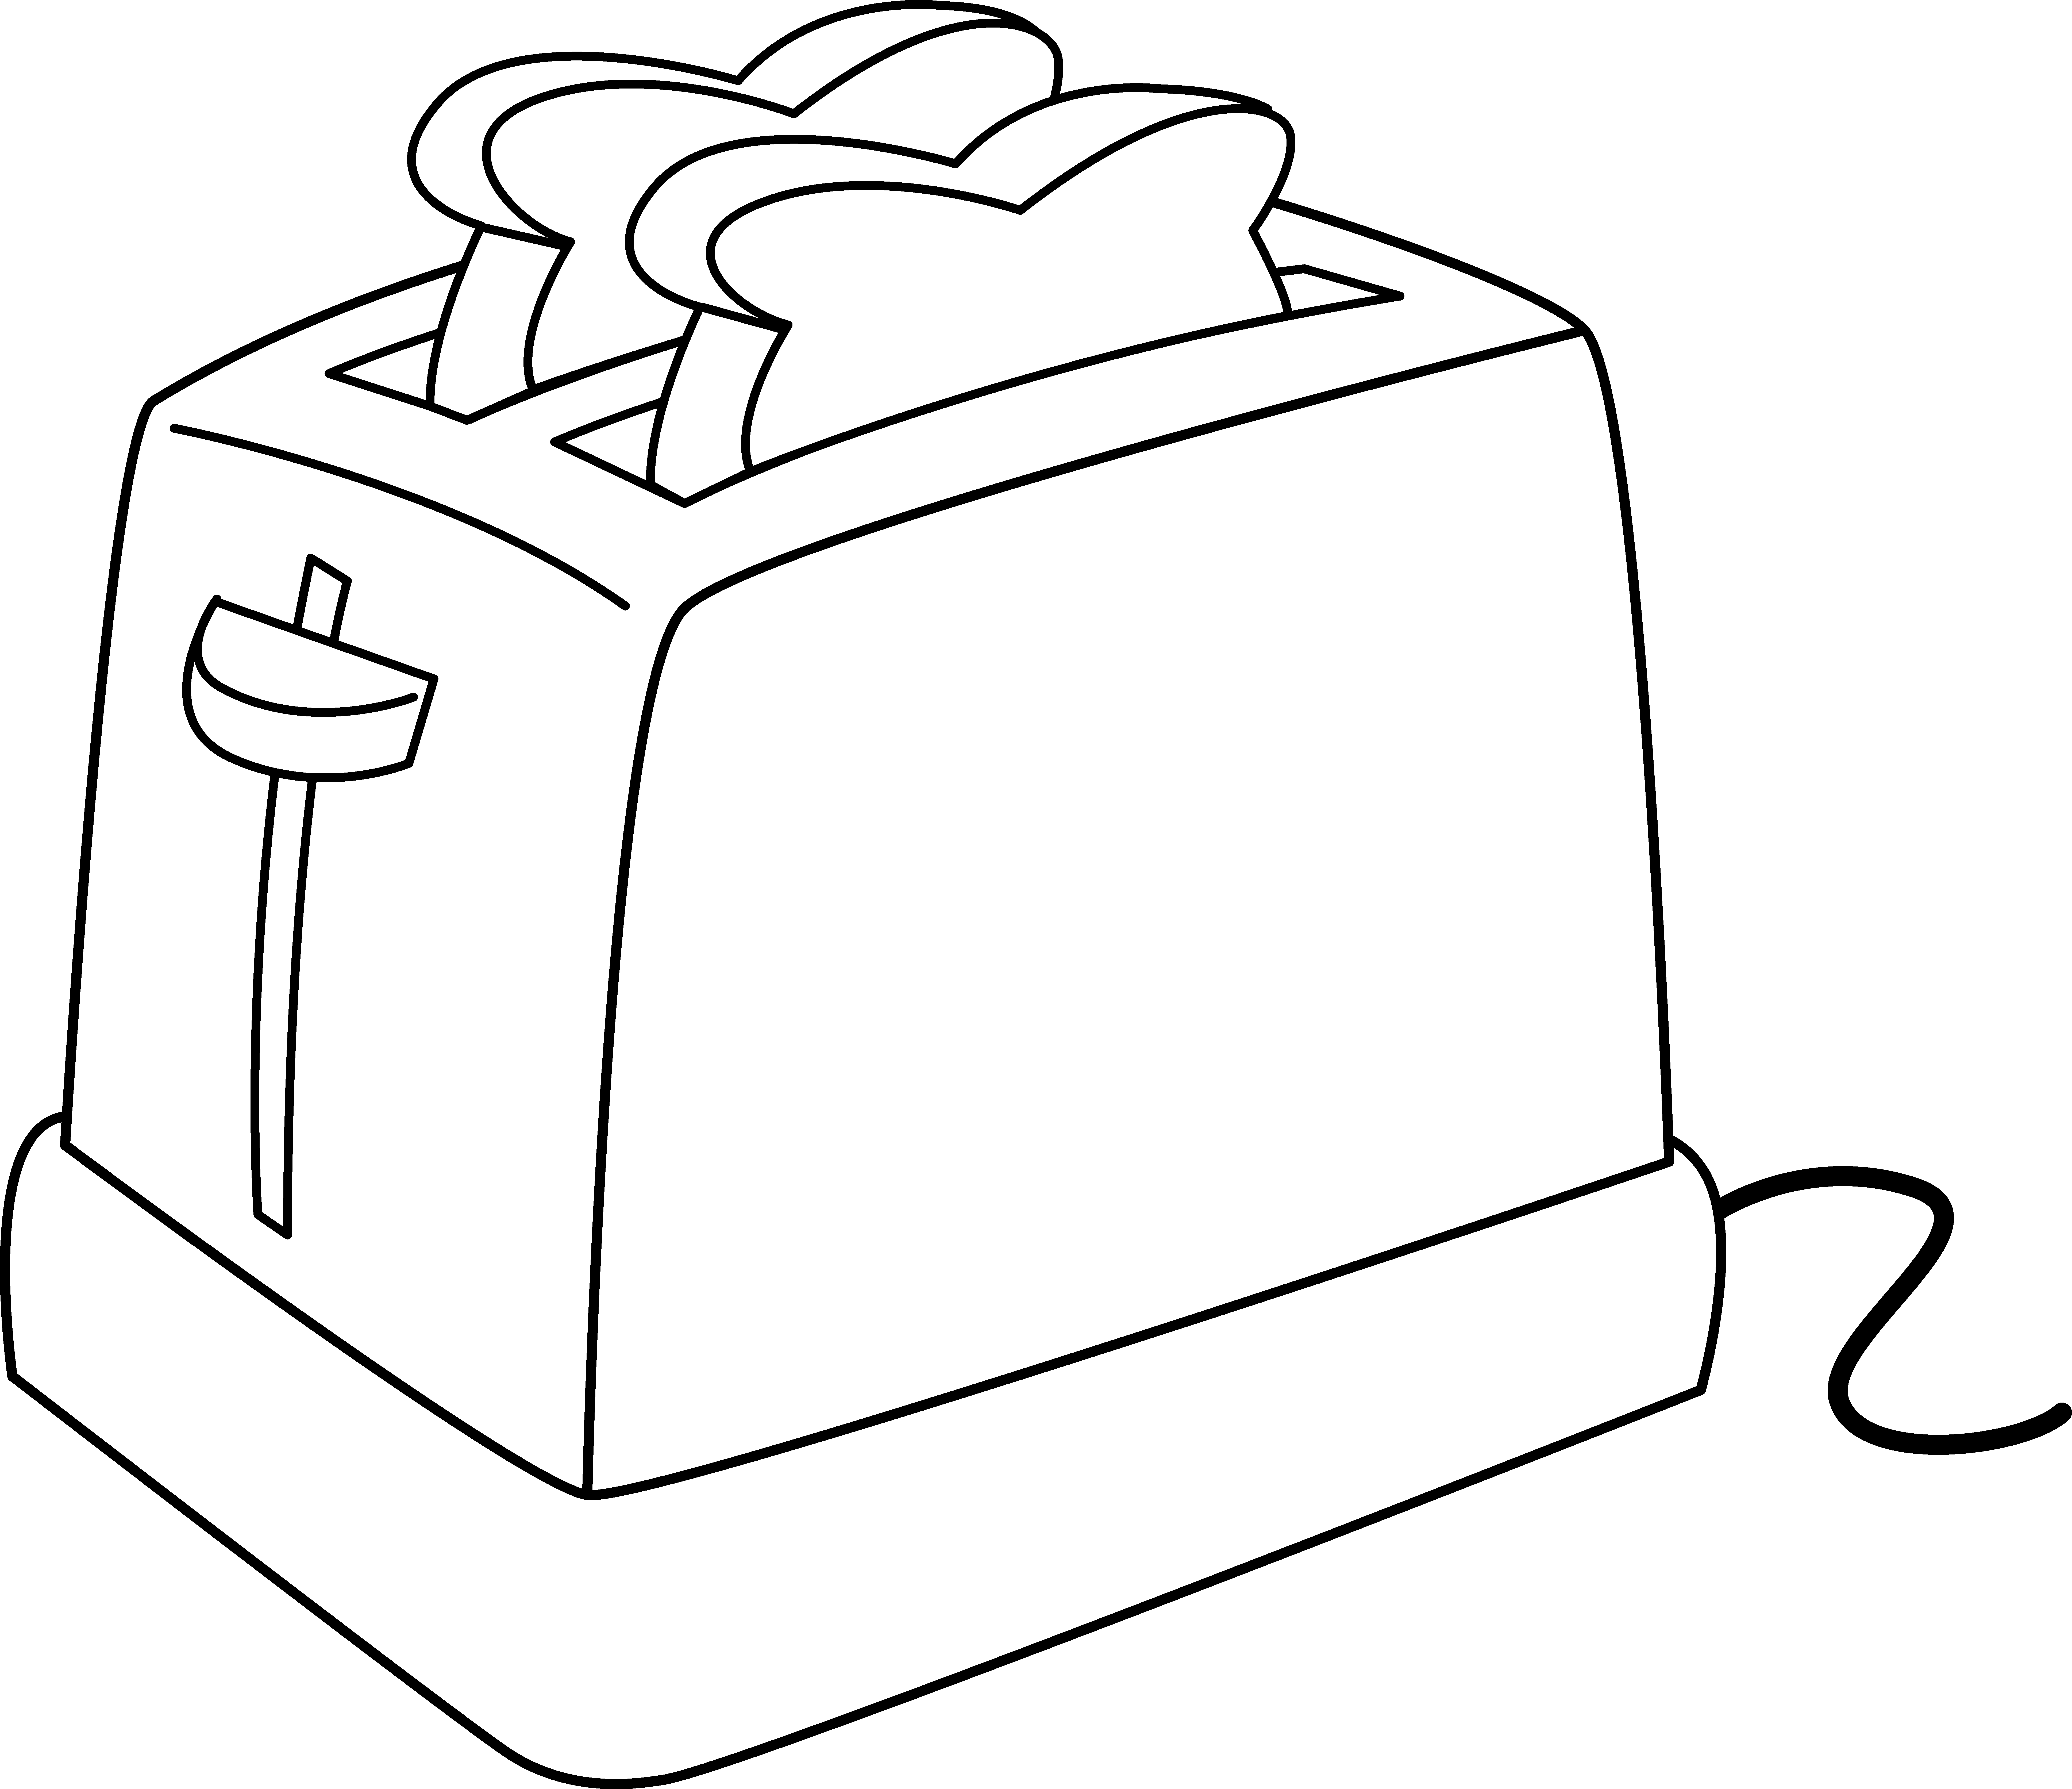 clip free stock Electric line art free. Toaster clipart cartoon.